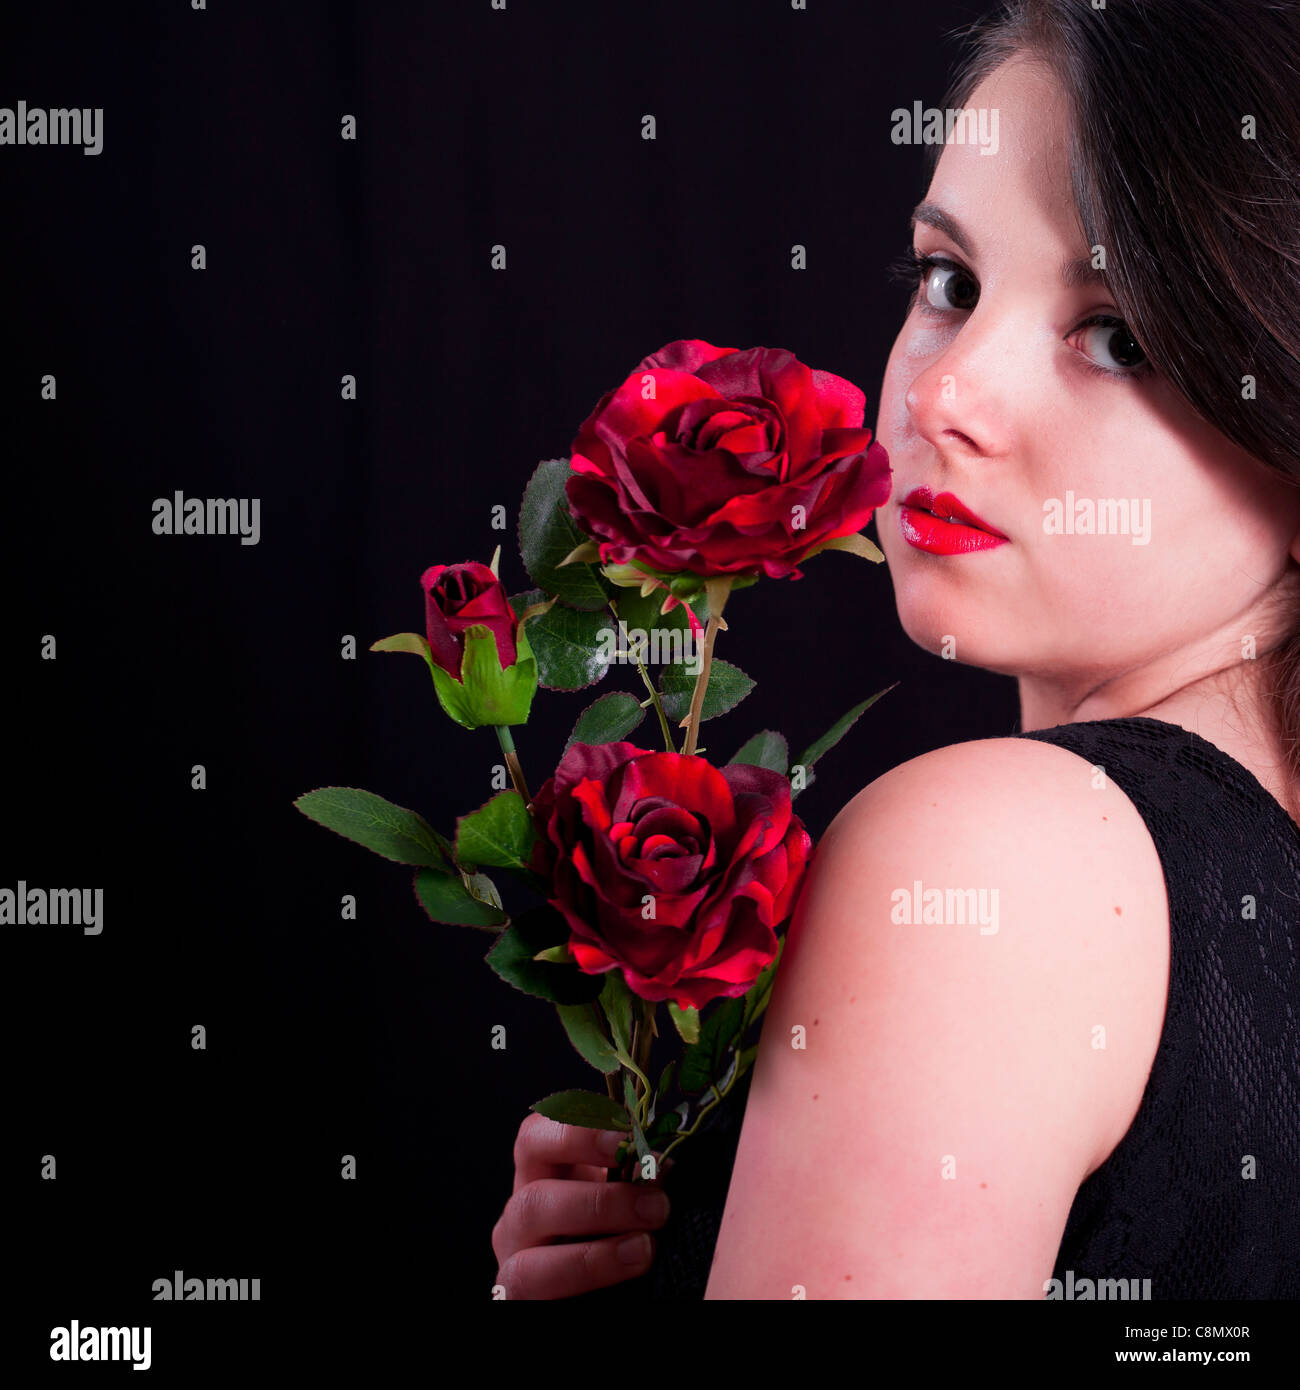 girl with red roses - Stock Image